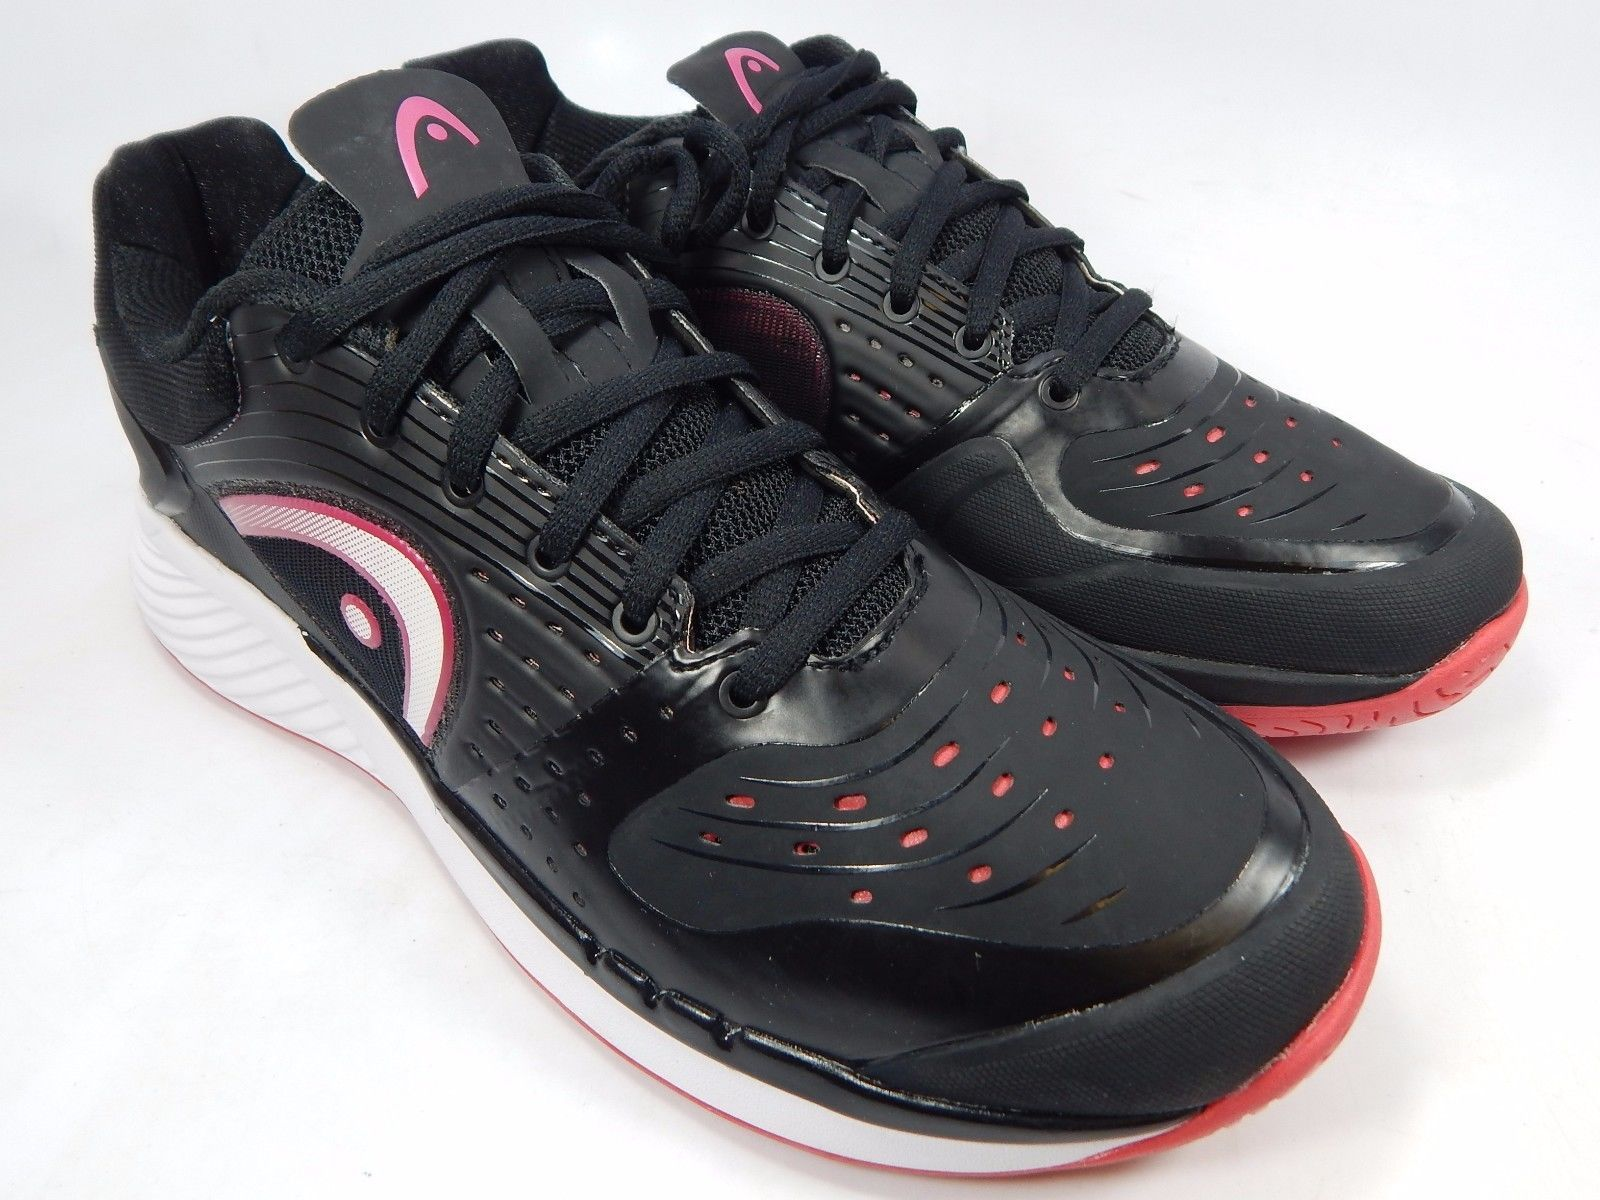 Head Sprint Pro Women's Tennis Court Shoes Size US 11 M (B) EU 43 Black Pink